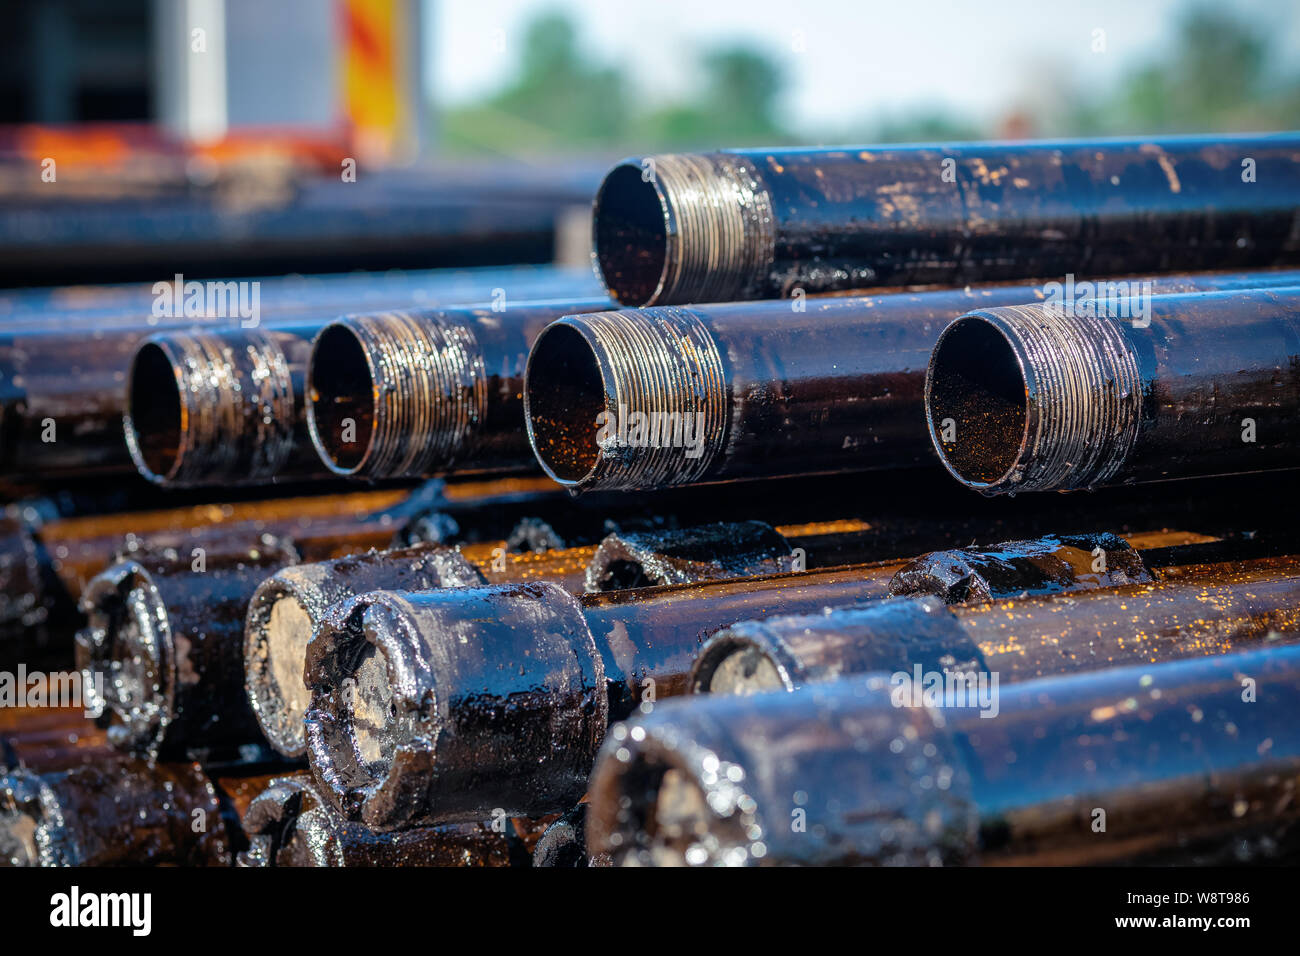 Oil Drill pipe. Rusty drill pipes were drilled in the well section. Downhole drilling rig. Laying the pipe on the deck. View of the shell of drill pip Stock Photo